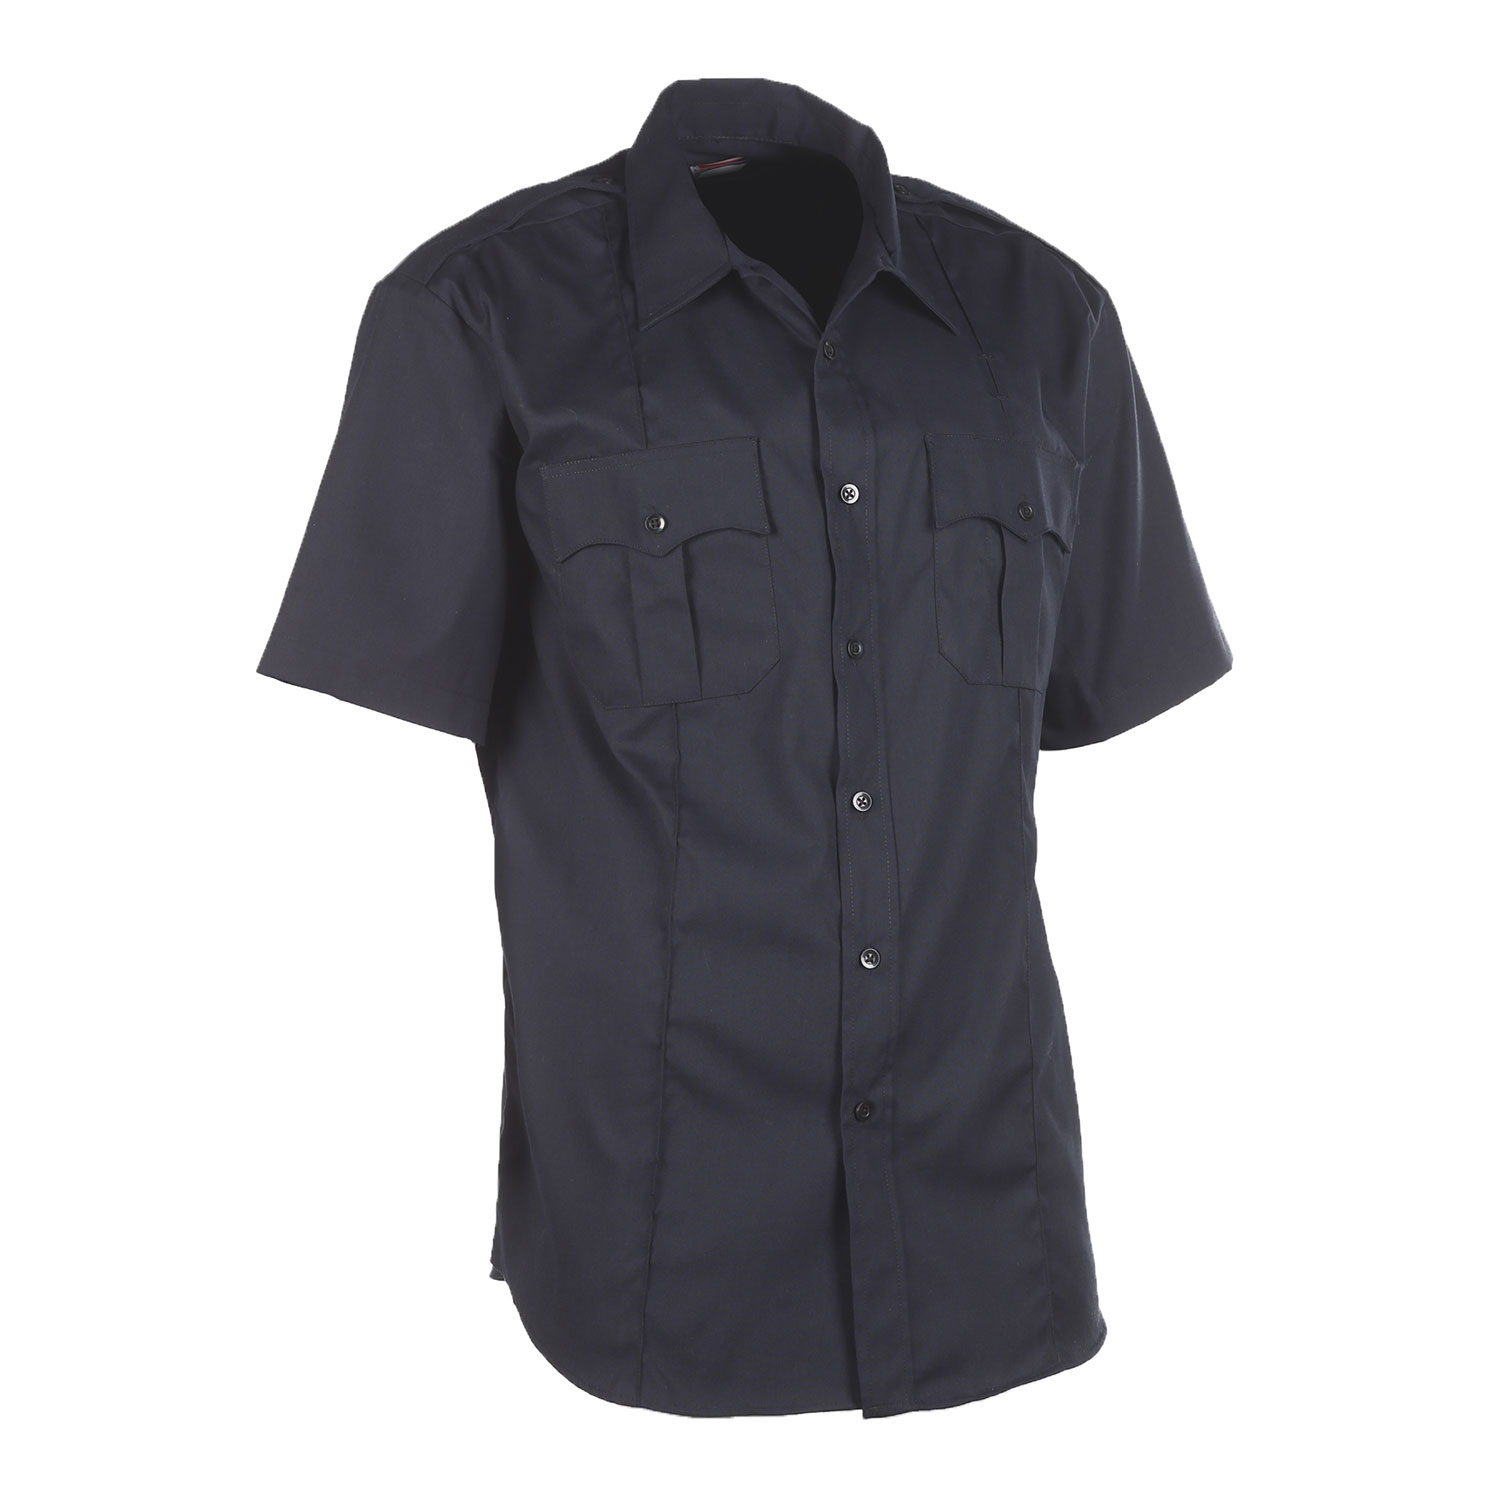 Spiewak SPDU Short Sleeve Poly Cotton Duty Shirt